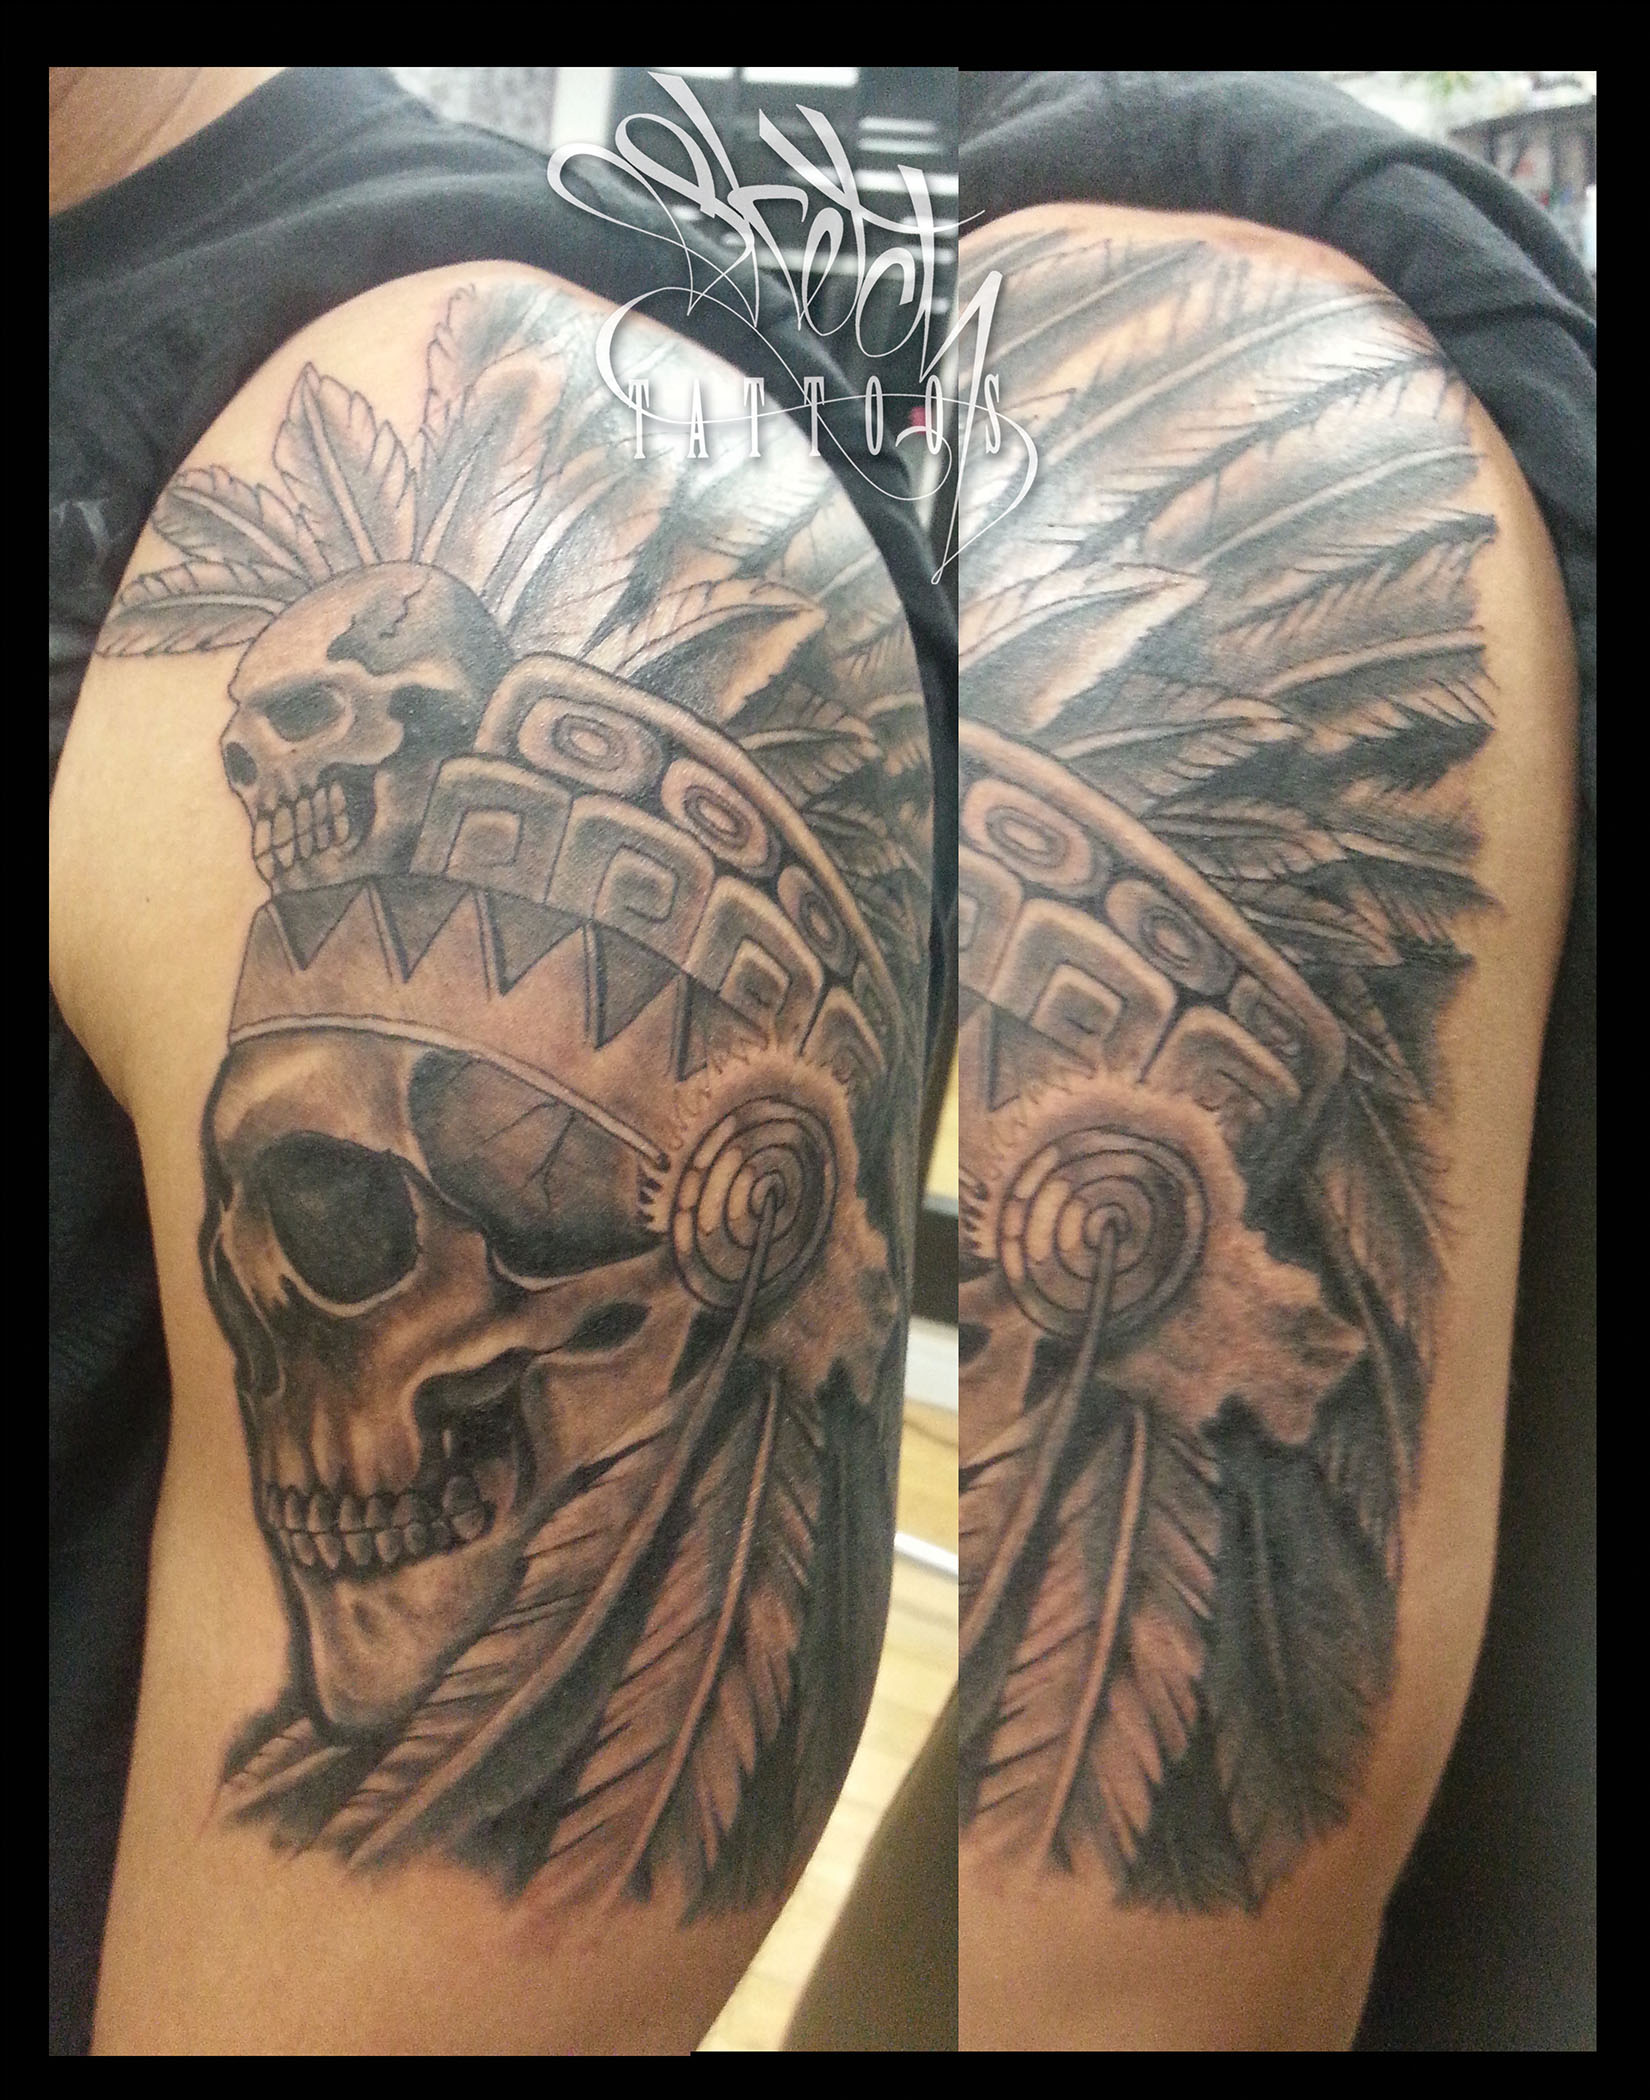 Tattoos by Sketch